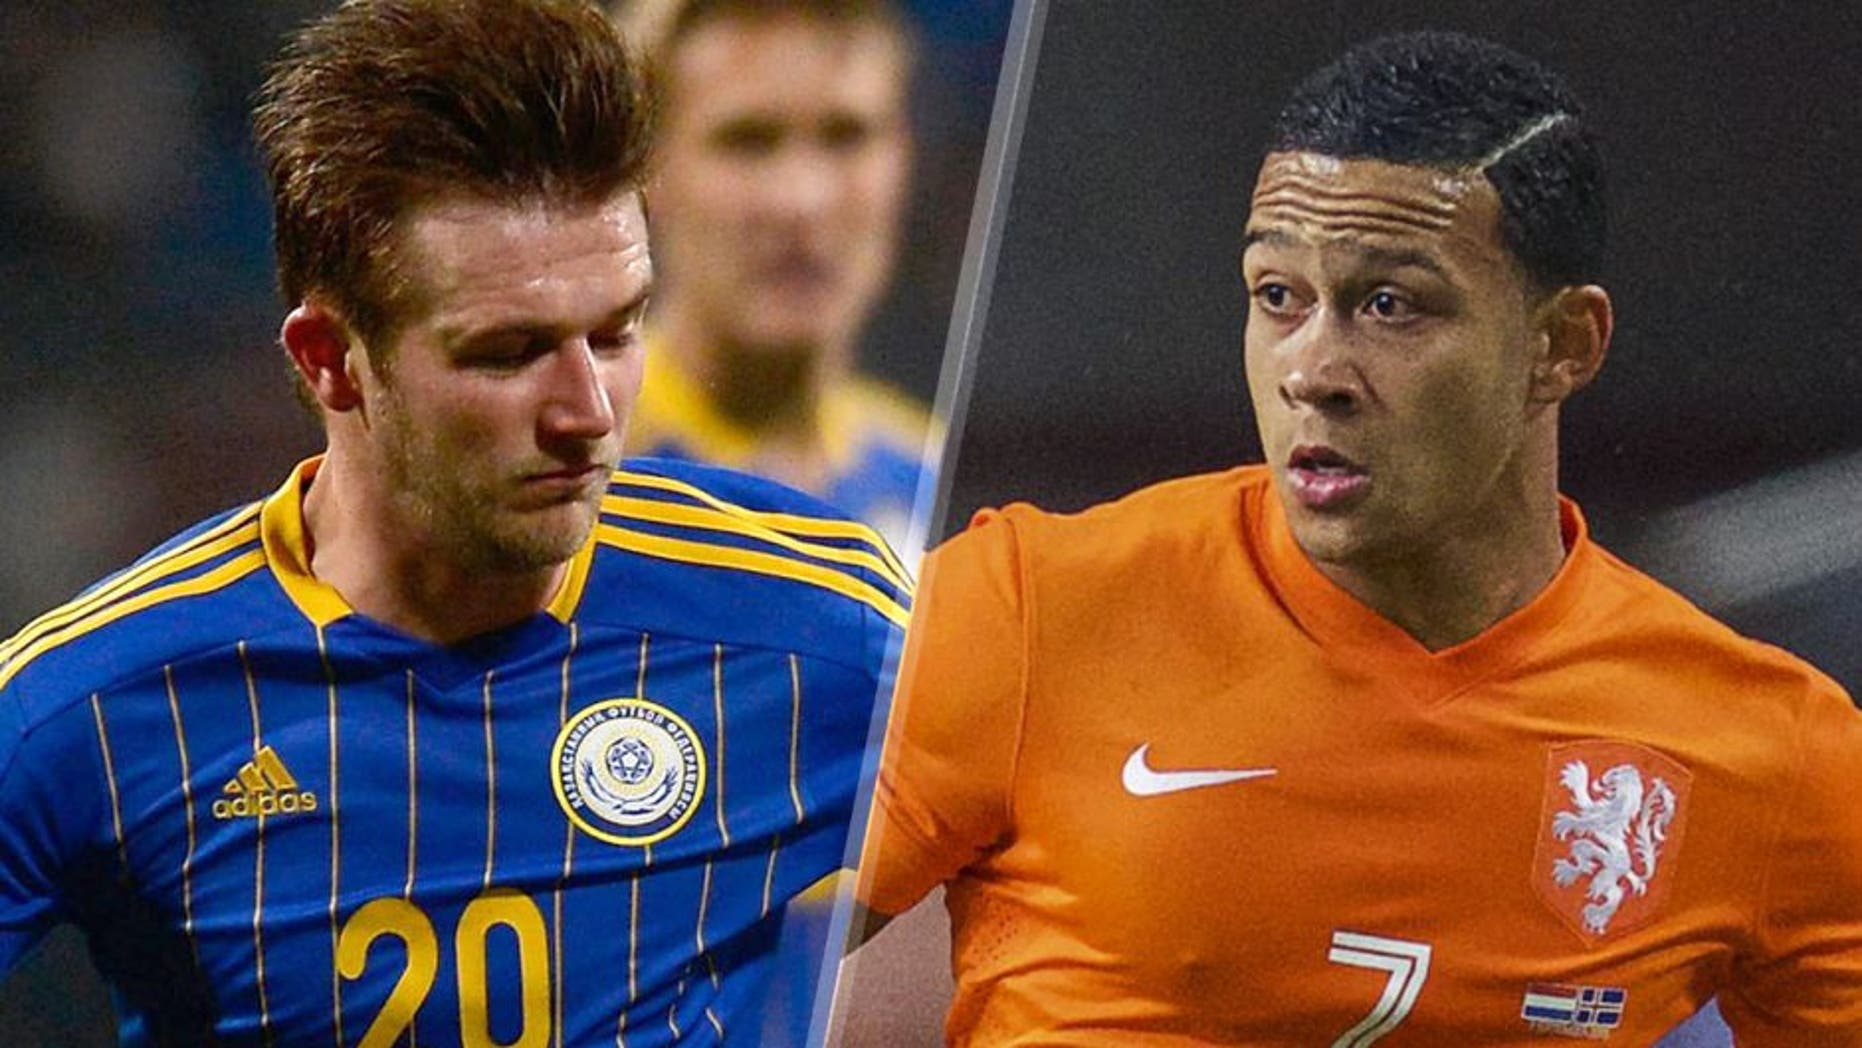 Memphis Depay of Holland during the UEFA Euro 2016 qualifying match between Netherlands and Iceland on September 3, 2015 at the Amsterdam Arena in Amsterdam, The Netherlands.(Photo by VI Images via Getty Images) NUREMBERG, GERMANY - MARCH 26: Mesut Oezil of Germany is challenged by Konstantin Engel of Kazakhstan during the FIFA 2014 World Cup Qualifier match between Germany and Kazakhstan at Grundig-Stadion on March 26, 2013 in Nuremberg, Germany. (Photo by Dennis Grombkowski/Bongarts/Getty Images)